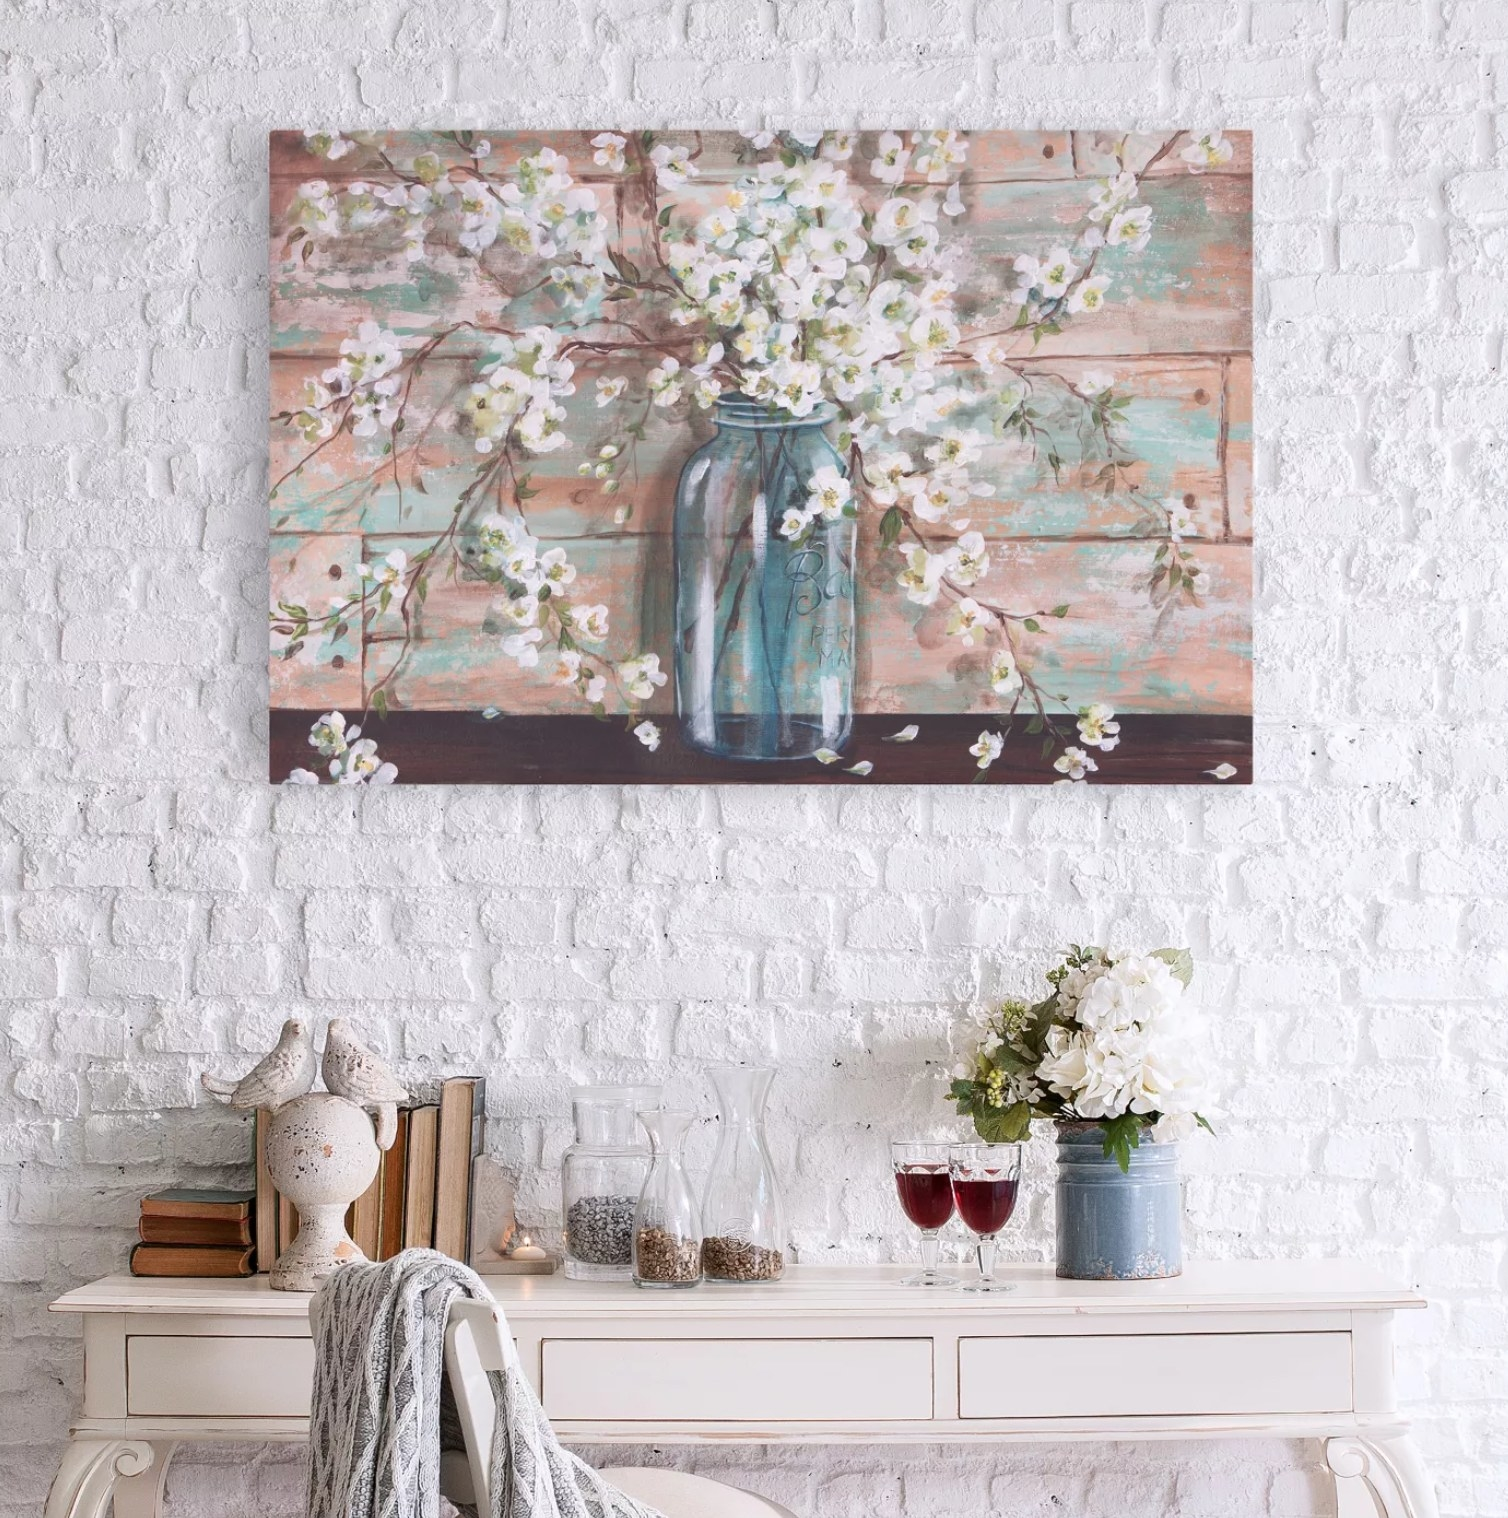 The painting hanging on a wall